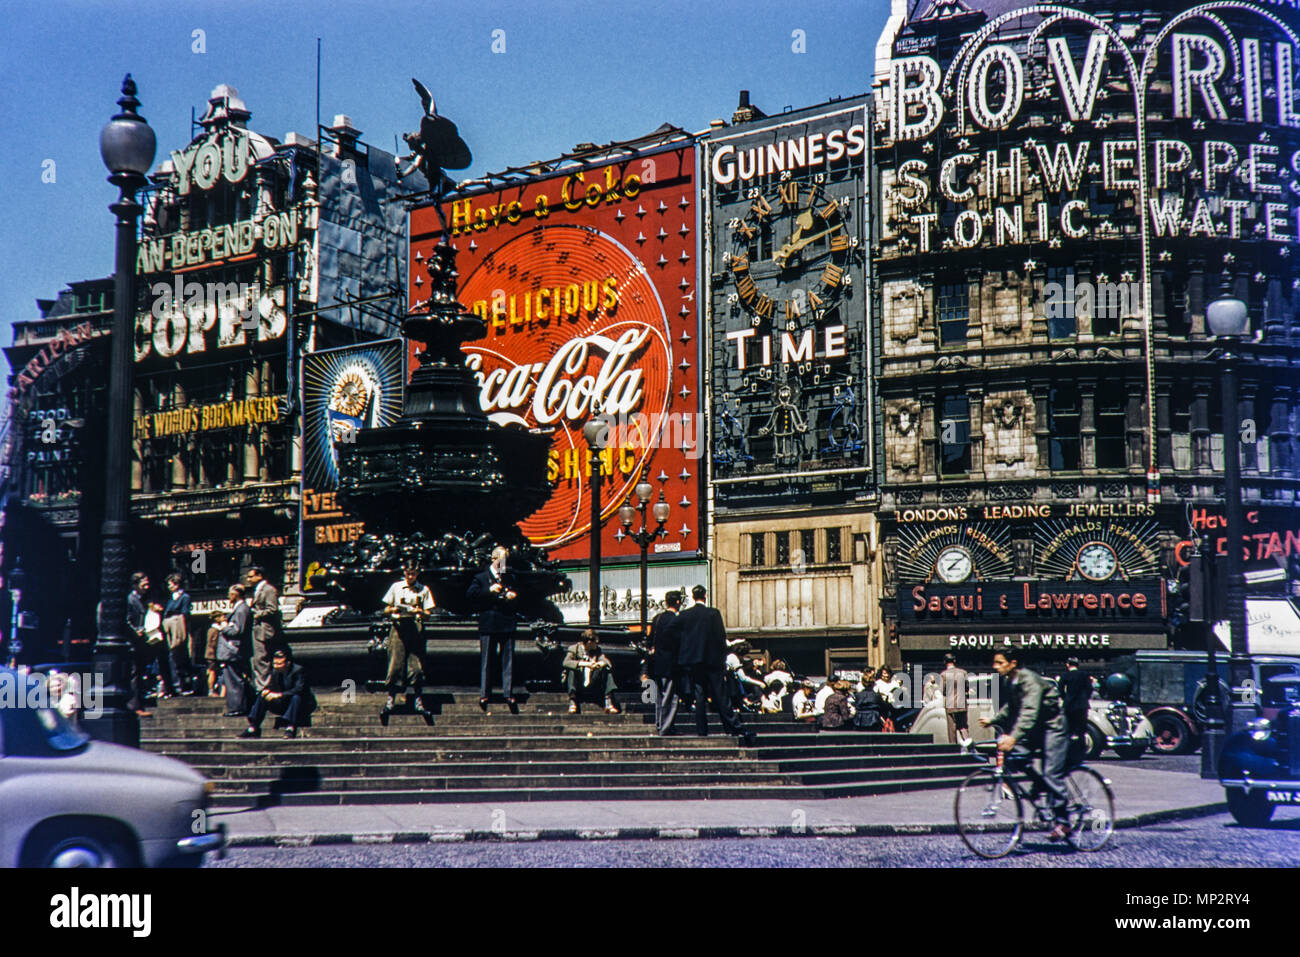 Piccadilly Circus, London in the 1950s - Stock Image